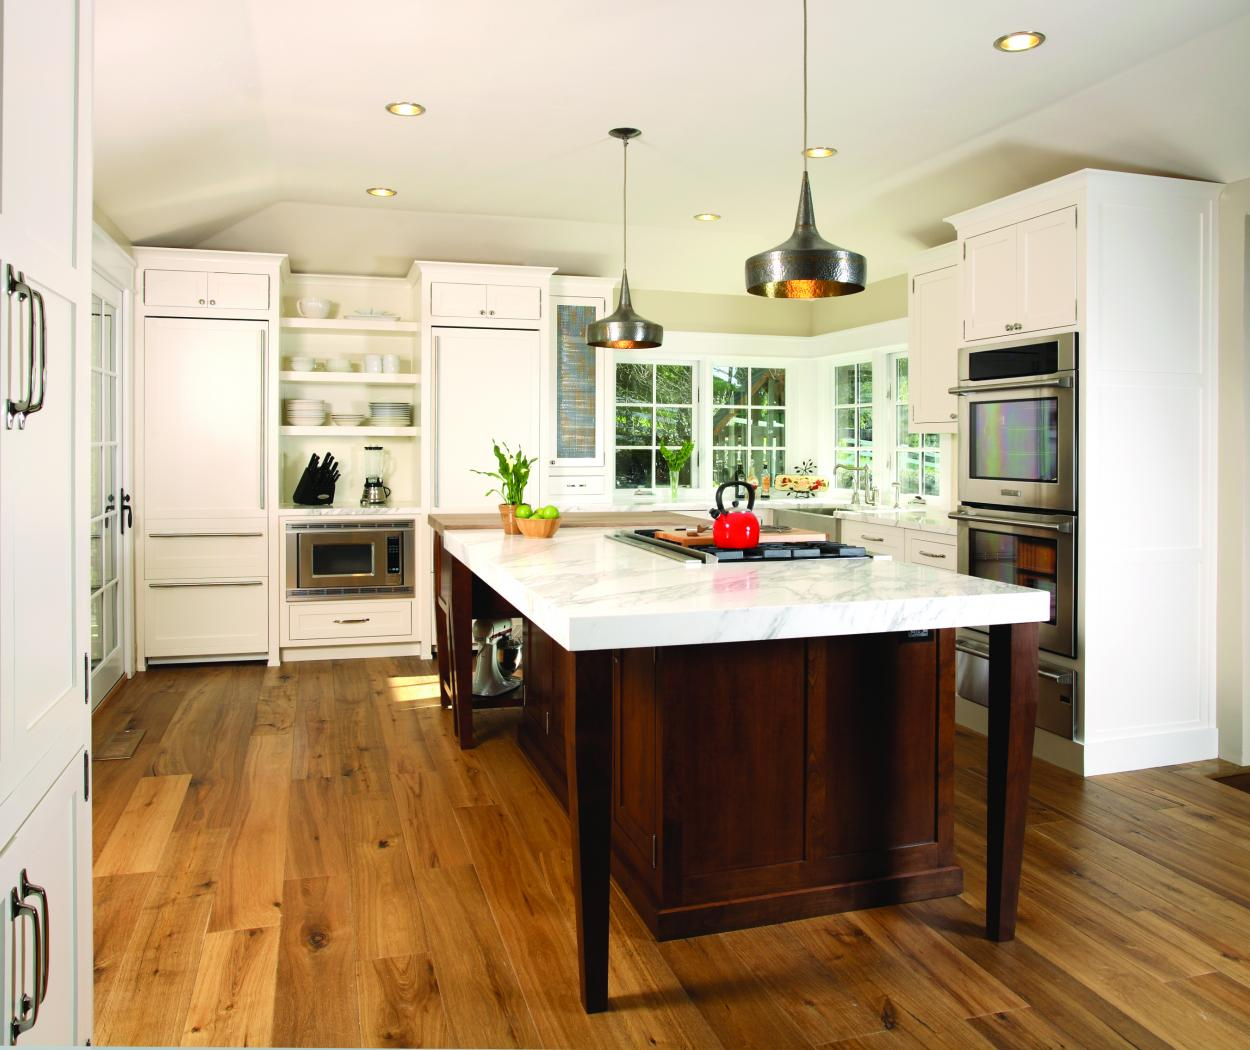 Transitional White Kitchen with a Chocolate Stained Island, Marble Countertops, Open Shelves and Stainless Steel Appliances